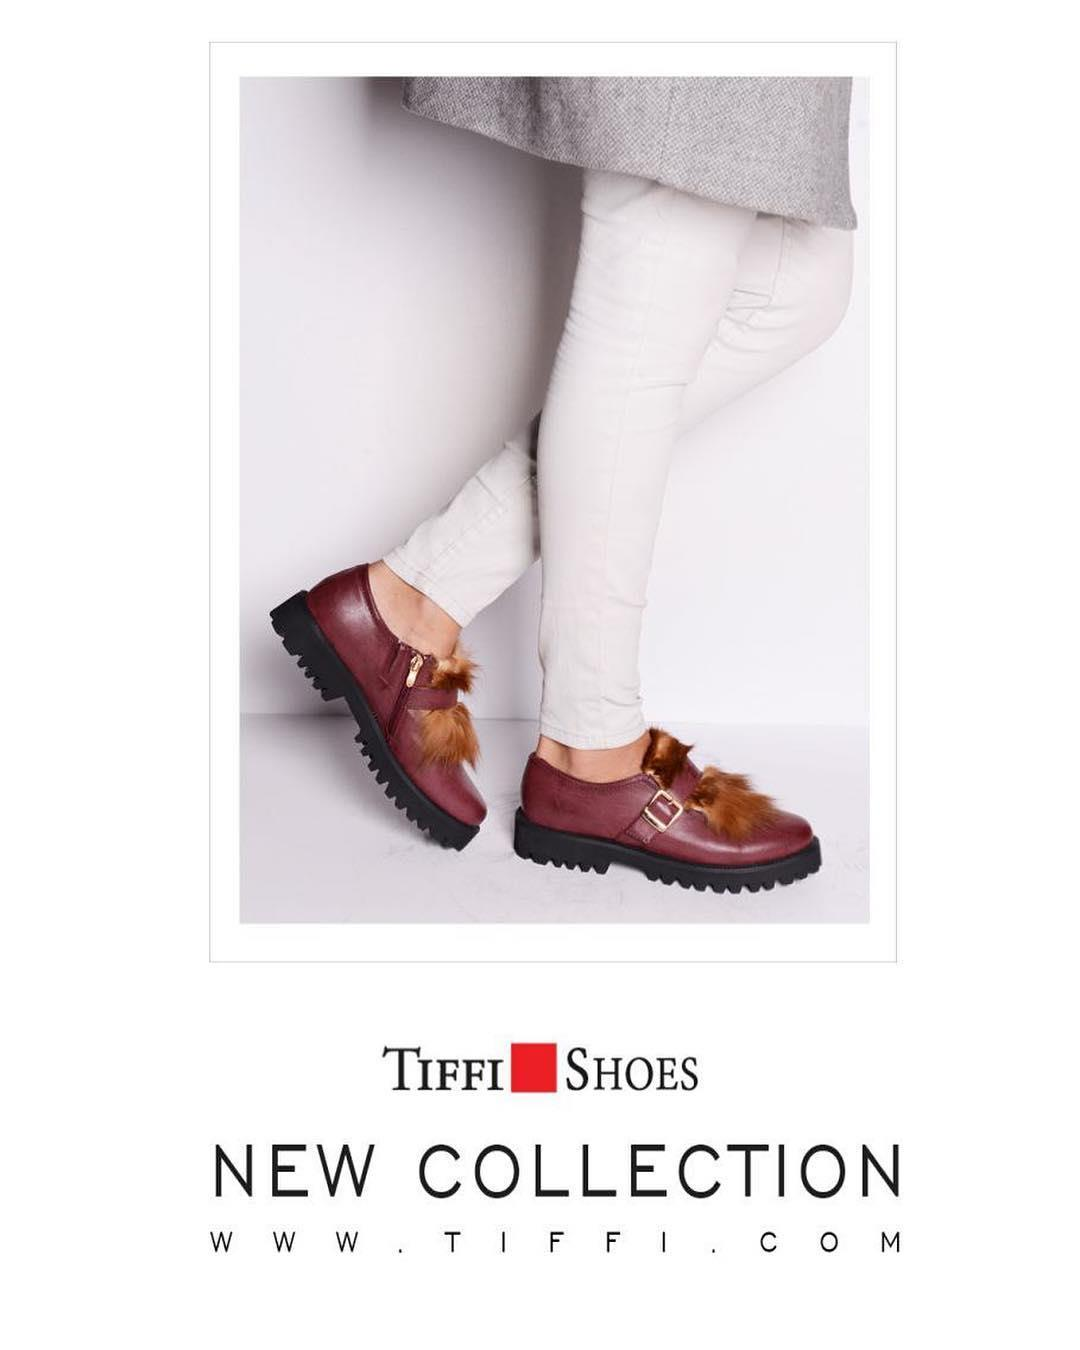 new collection for tiffi